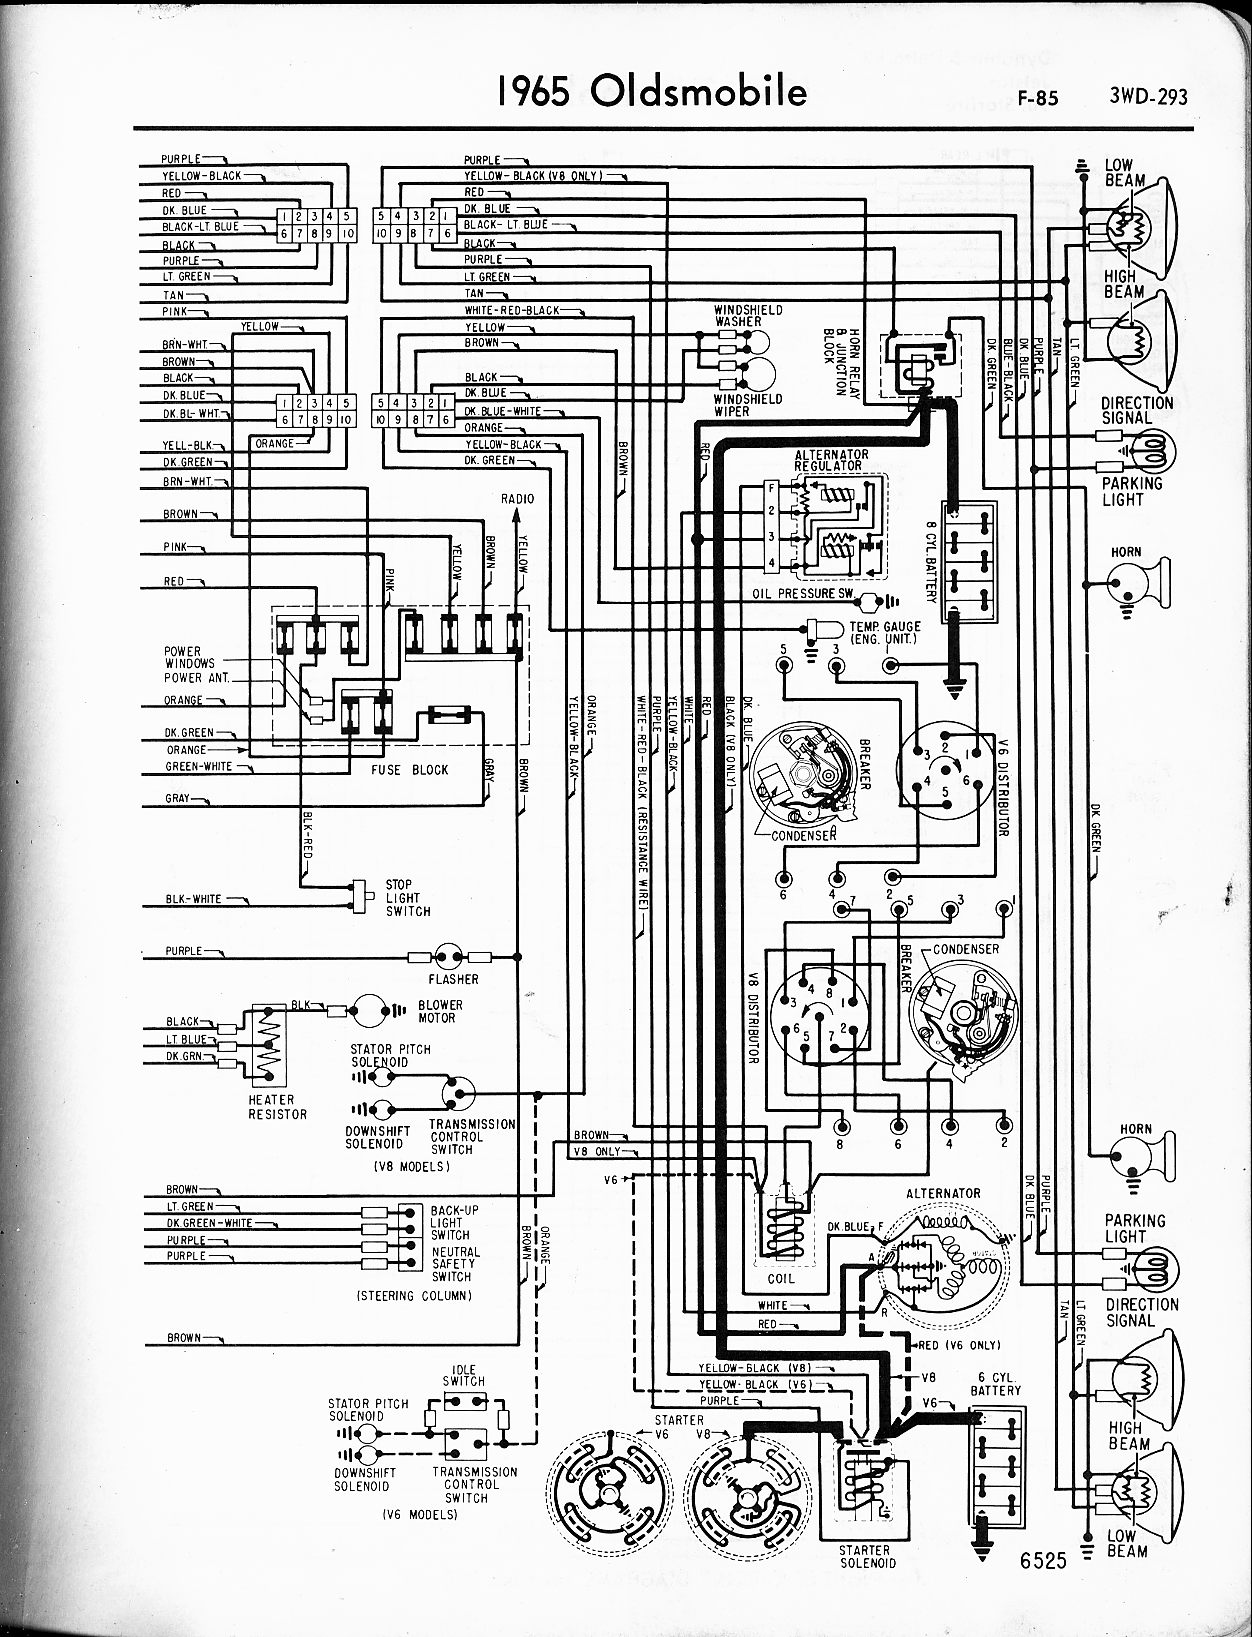 MWire5765 293 oldsmobile wiring diagrams the old car manual project 1967 olds 442 wiring diagram at gsmx.co